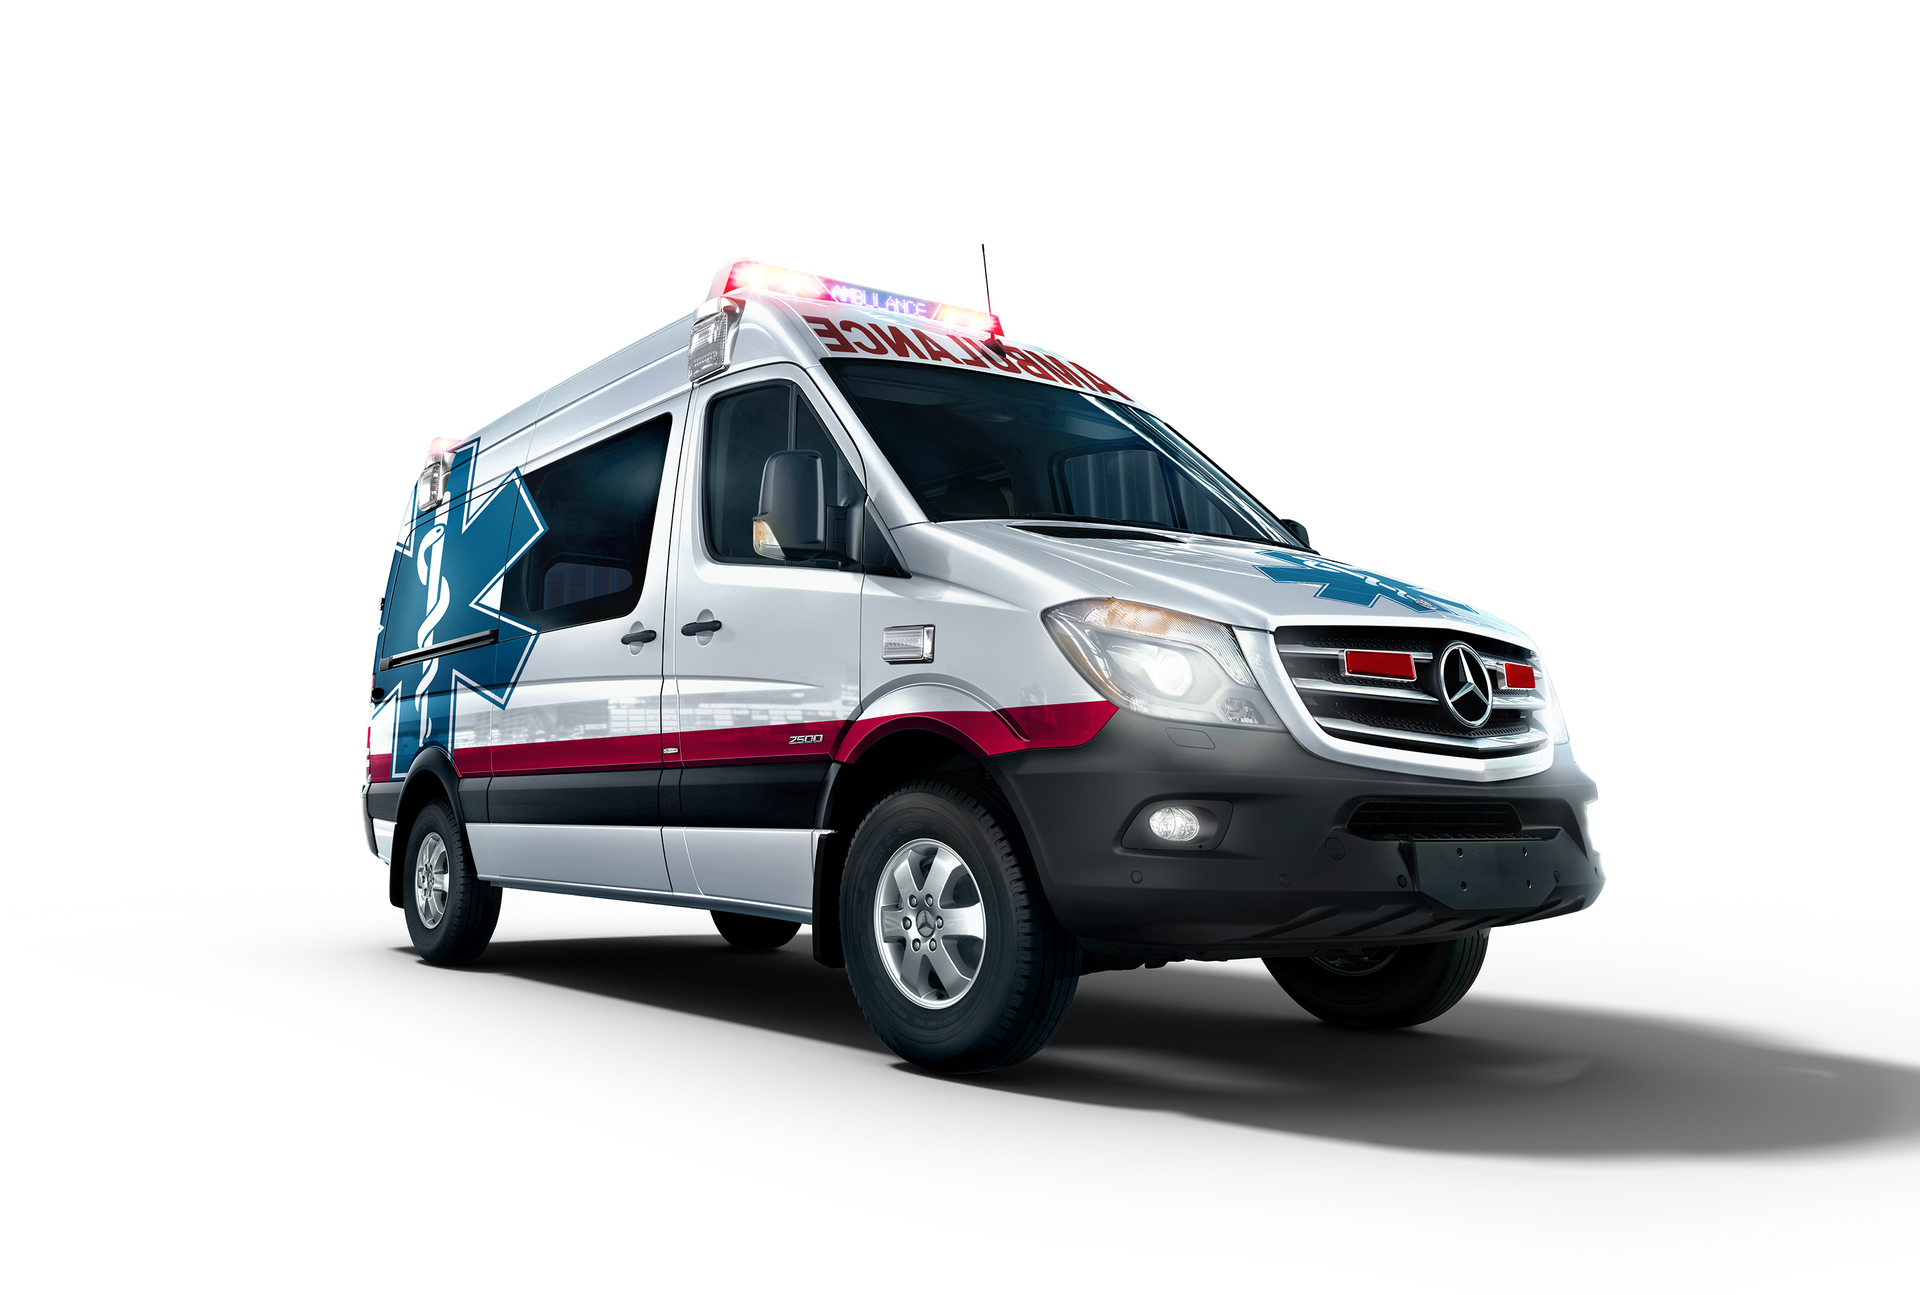 Mercedes benz sprinter ambulance ems world for Mercedes benz training and education